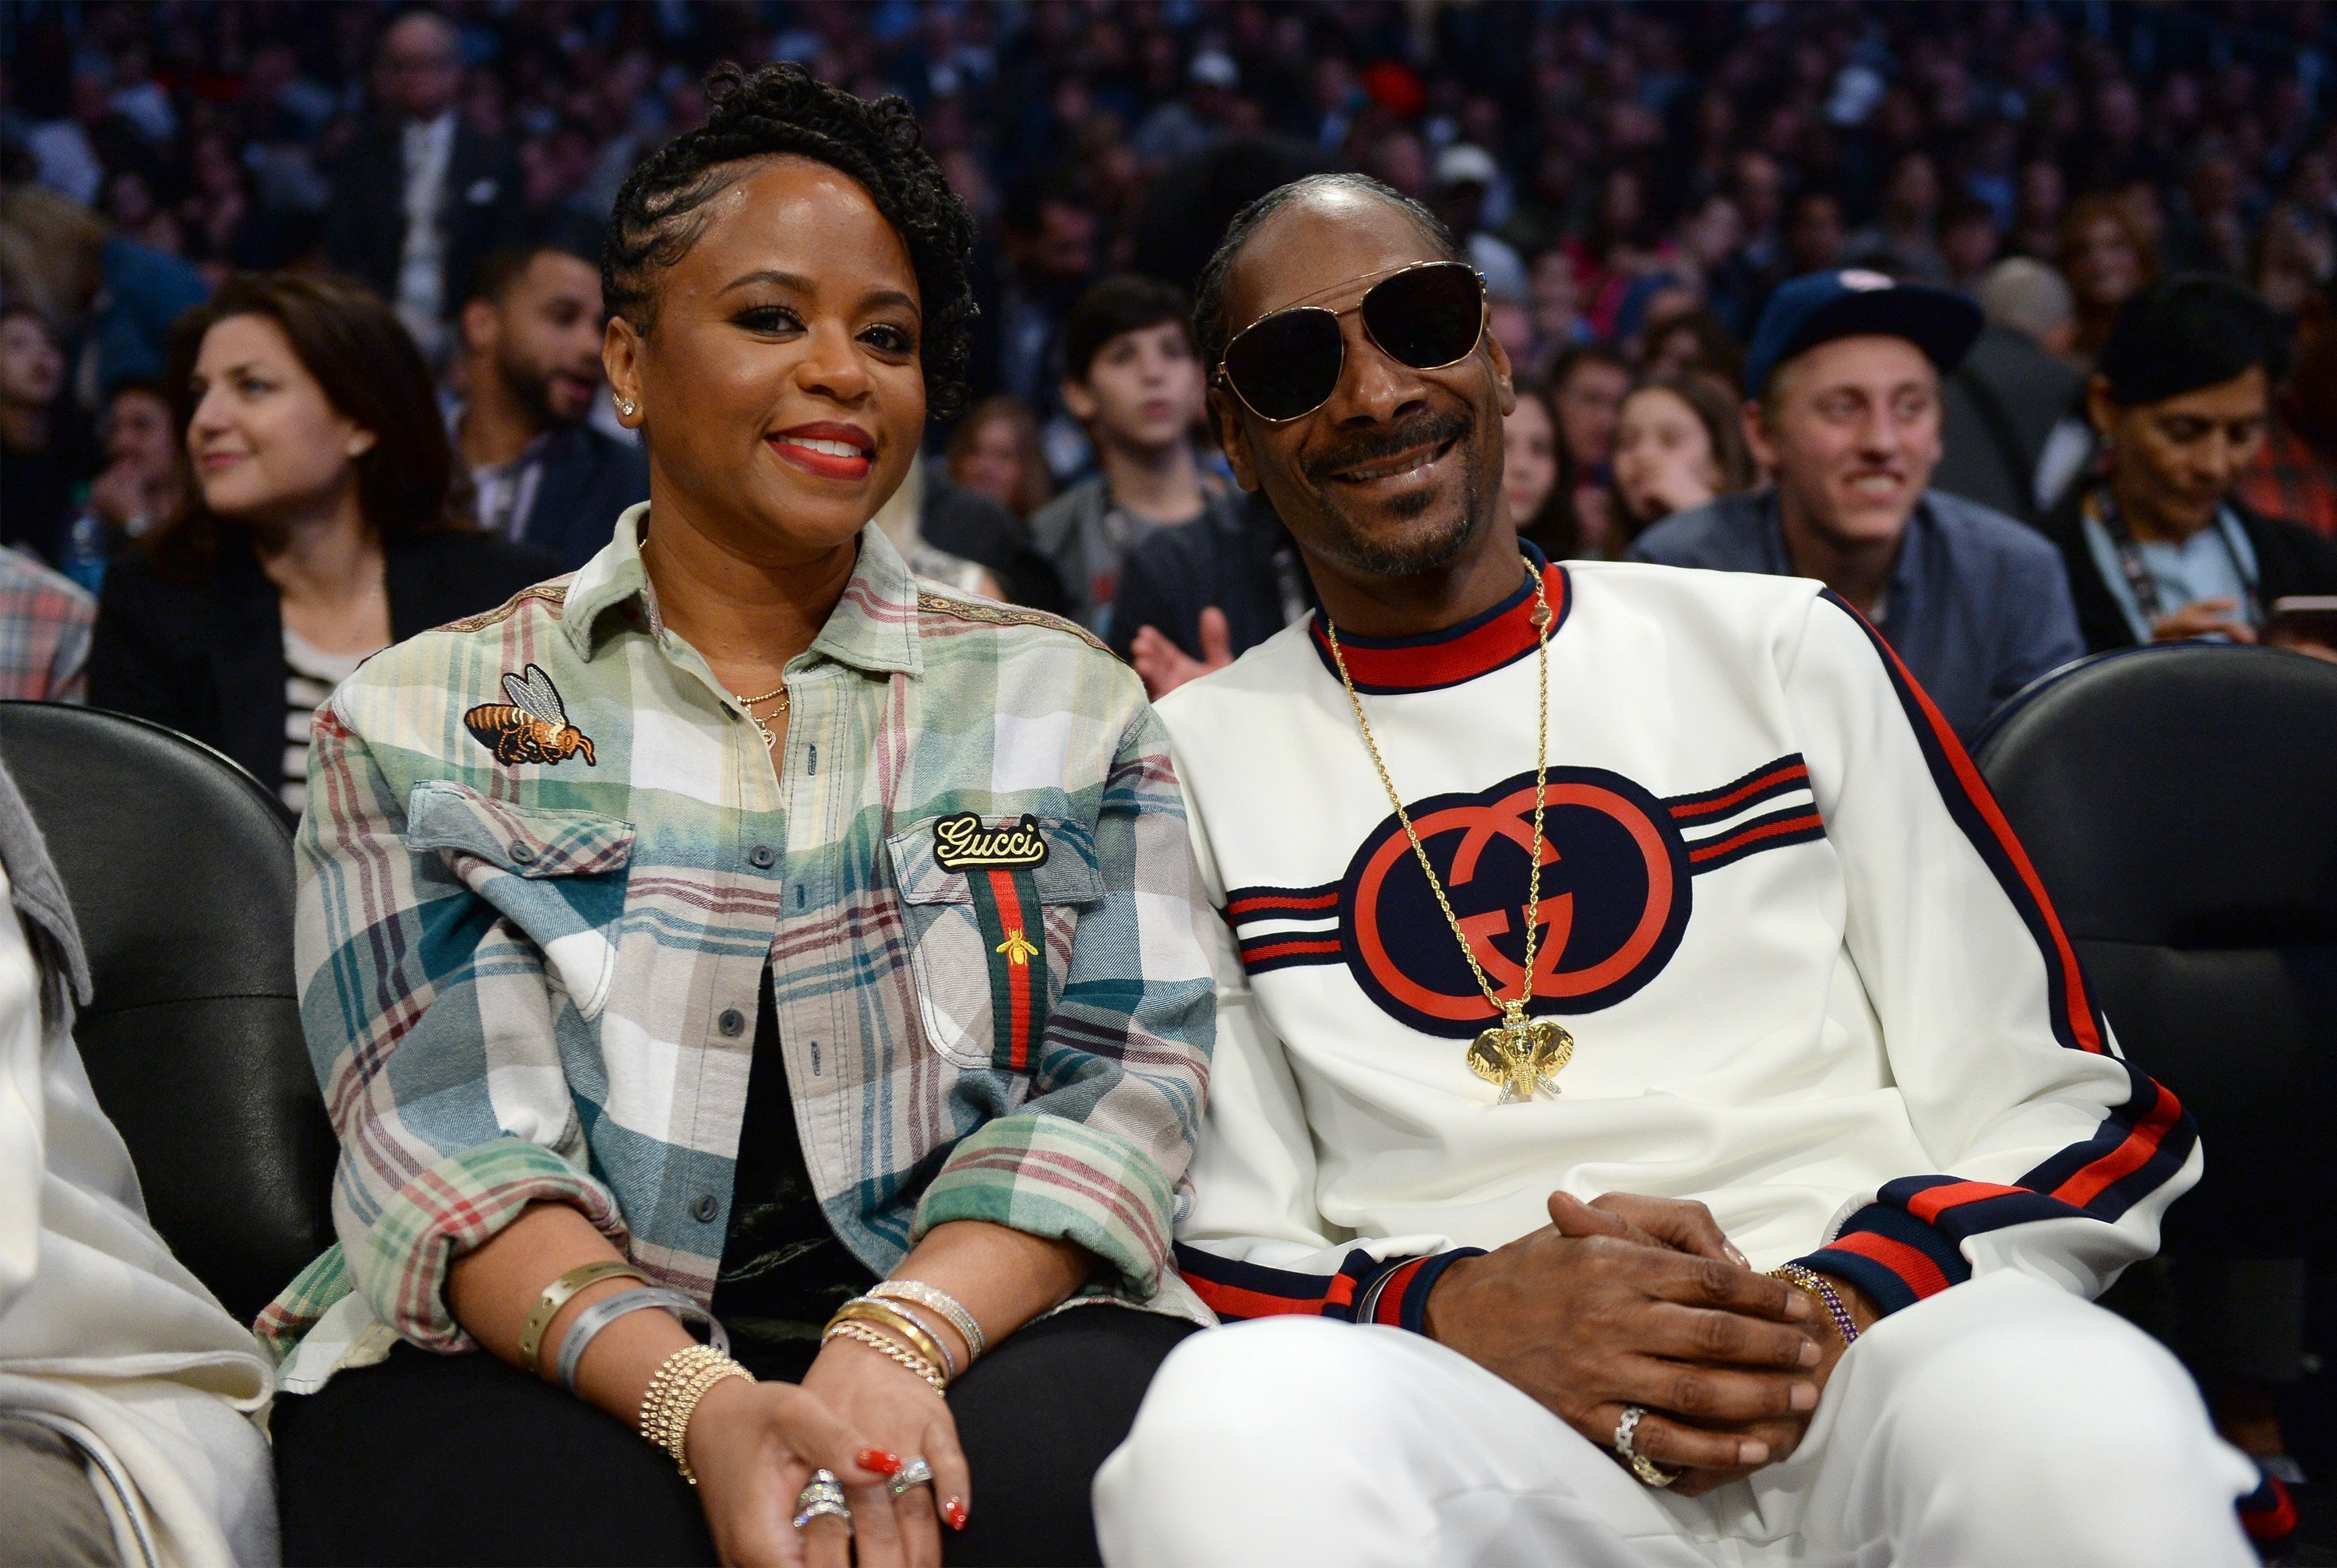 Snoop Dogg & wife Shante at the NBA All-Star Game 2018 on Feb. 18, 2018 in California | Photo: Getty Images